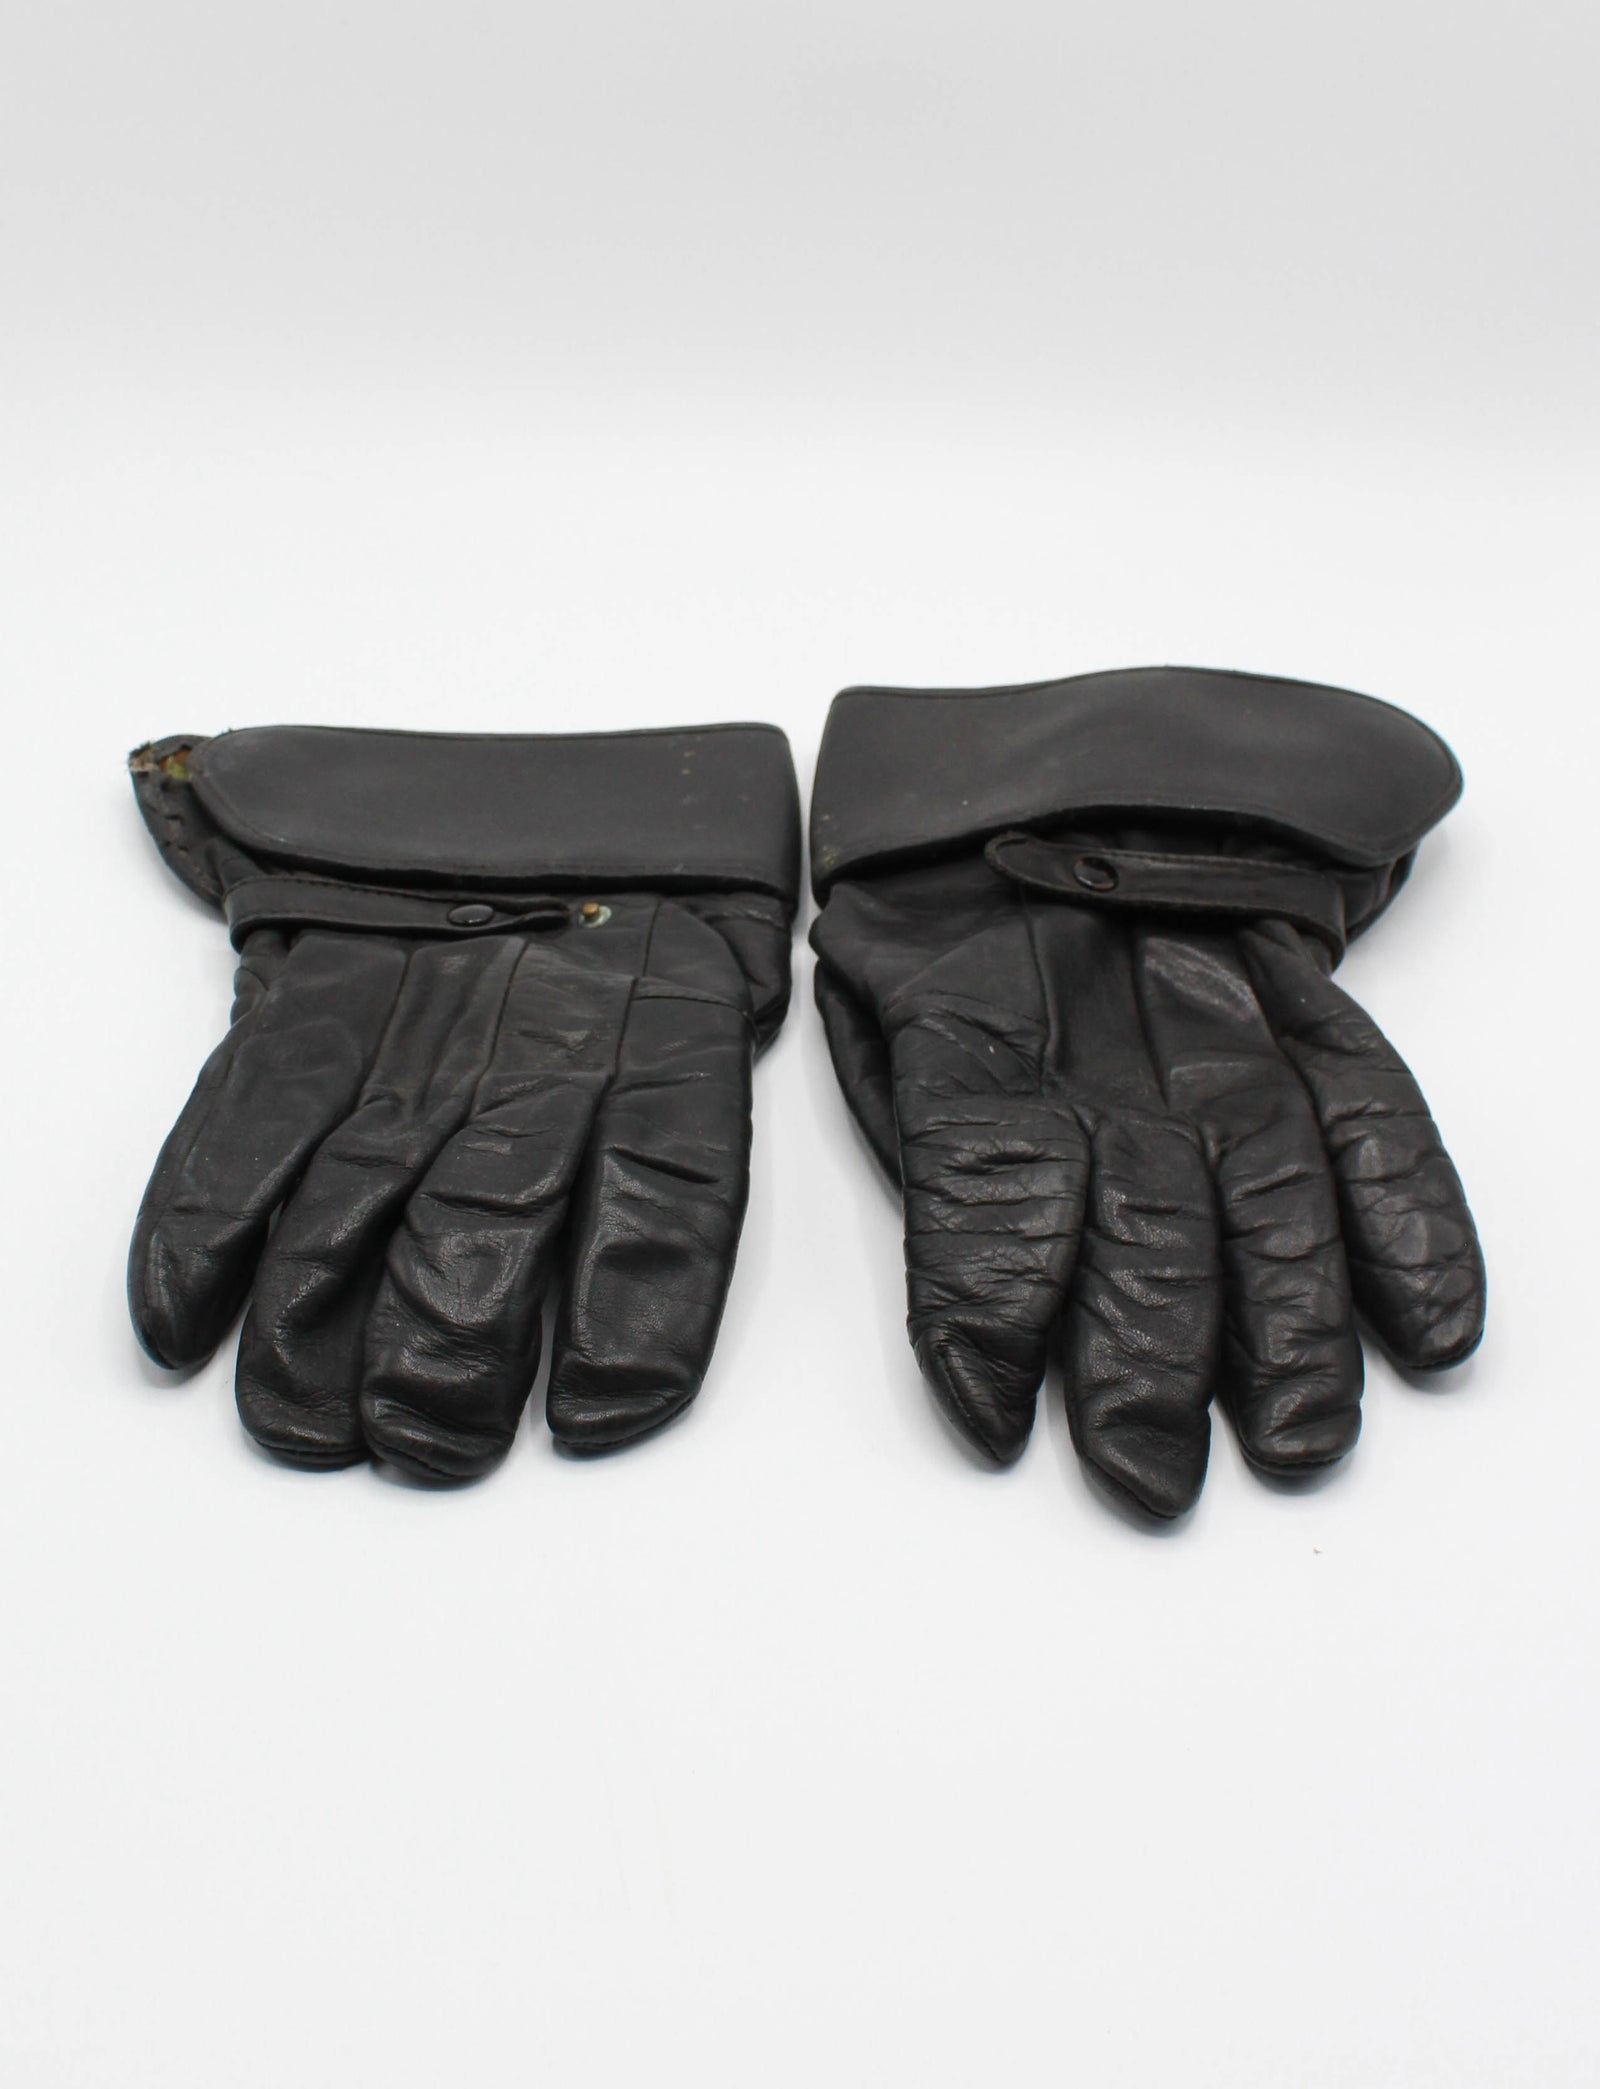 Men's Vintage 80's/90's Harley Davidson Gauntlet Gloves Black Leather Riding Biker Motorcycle Size 12